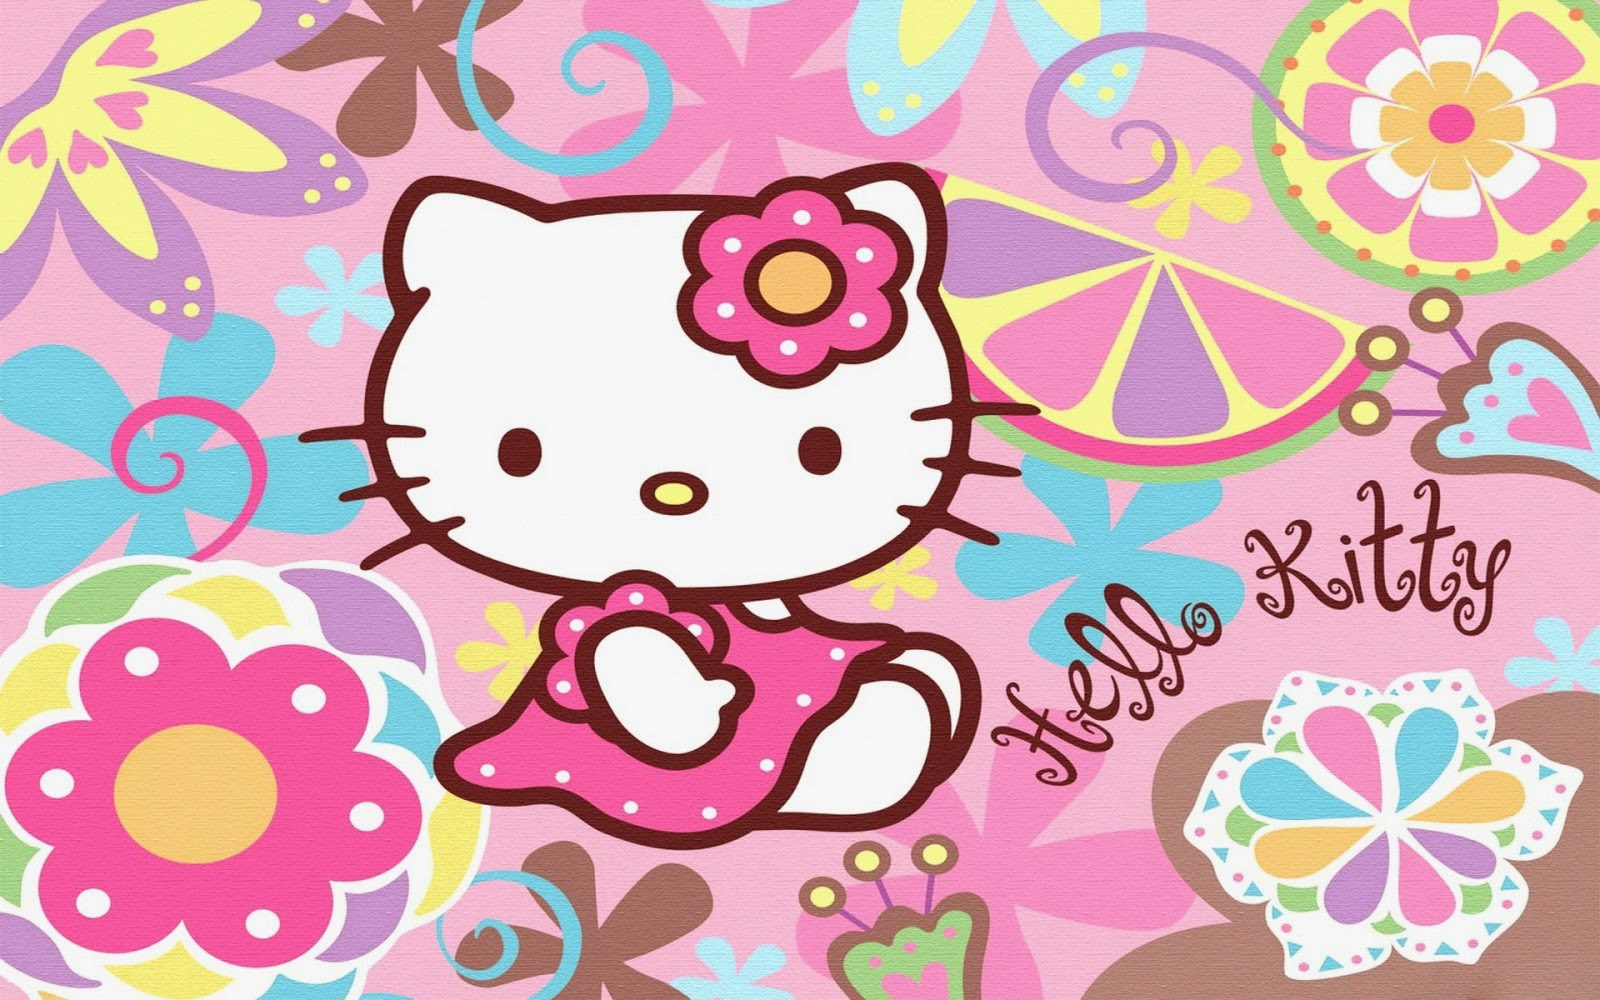 Gambar Wallpaper Kartun Hello Kitty